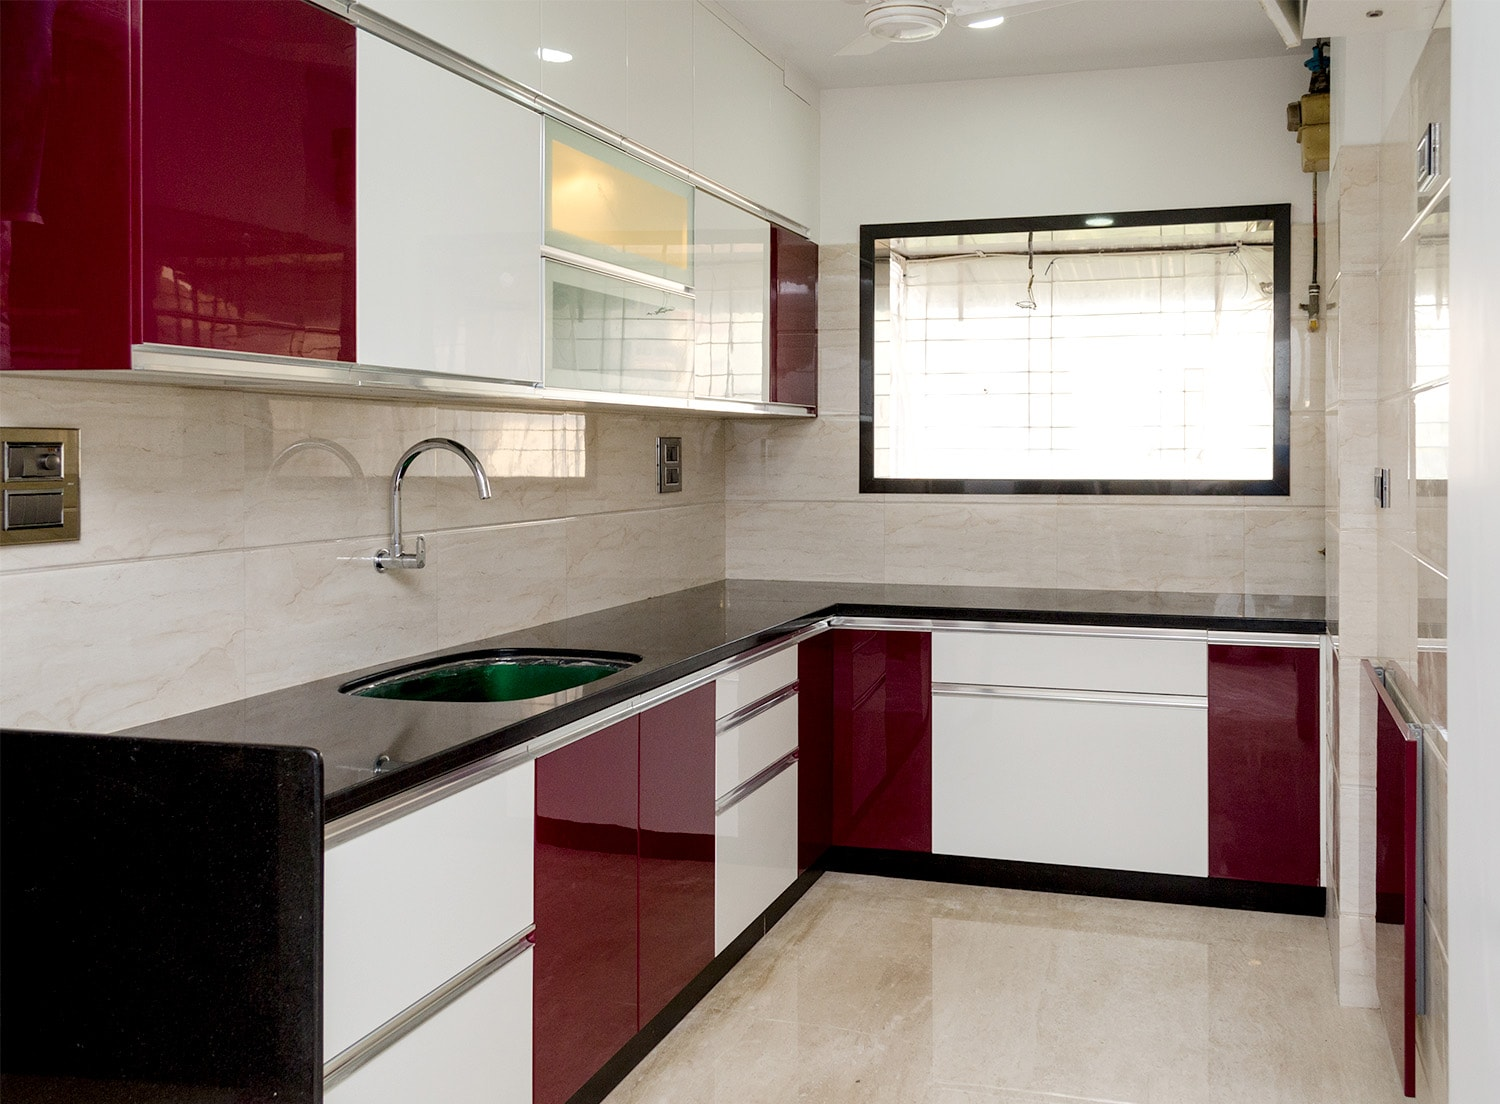 Home interiors by homelane modular kitchens wardrobes for Home interior design ideas mumbai flats